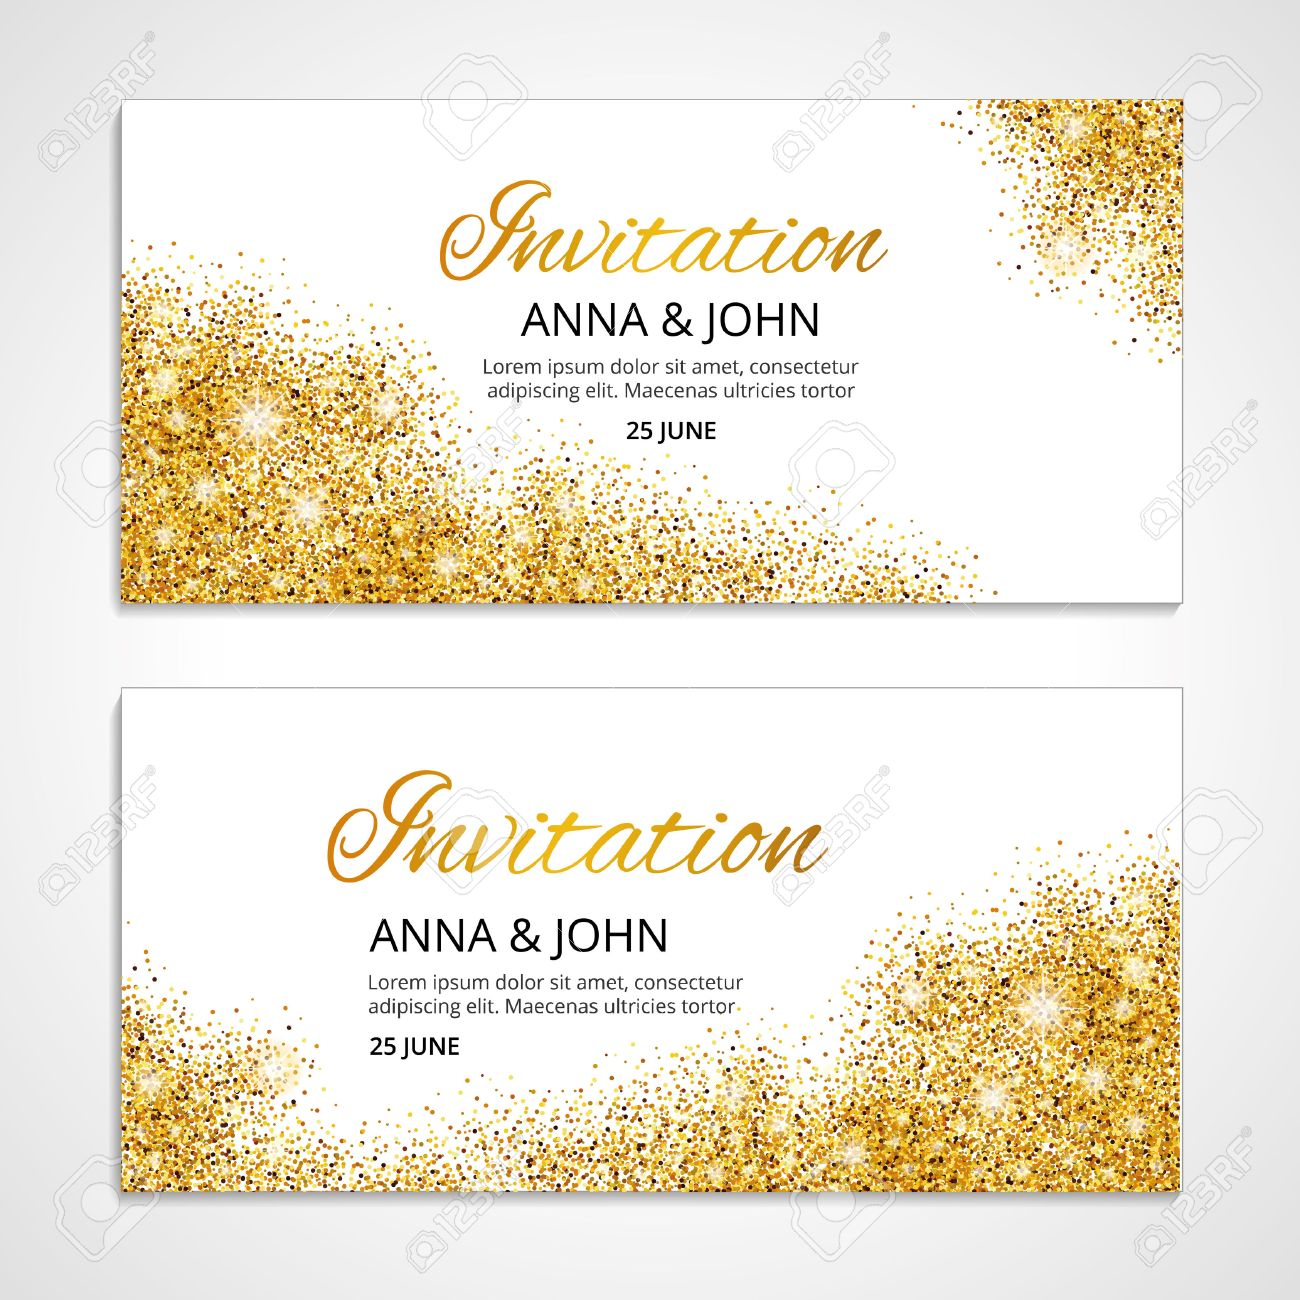 Gold wedding invitation for wedding, background, anniversary marriage engagement. Gold background. Golden greeting card. Save the date. Golden light and bright sparkles. For invitation. - 52729578